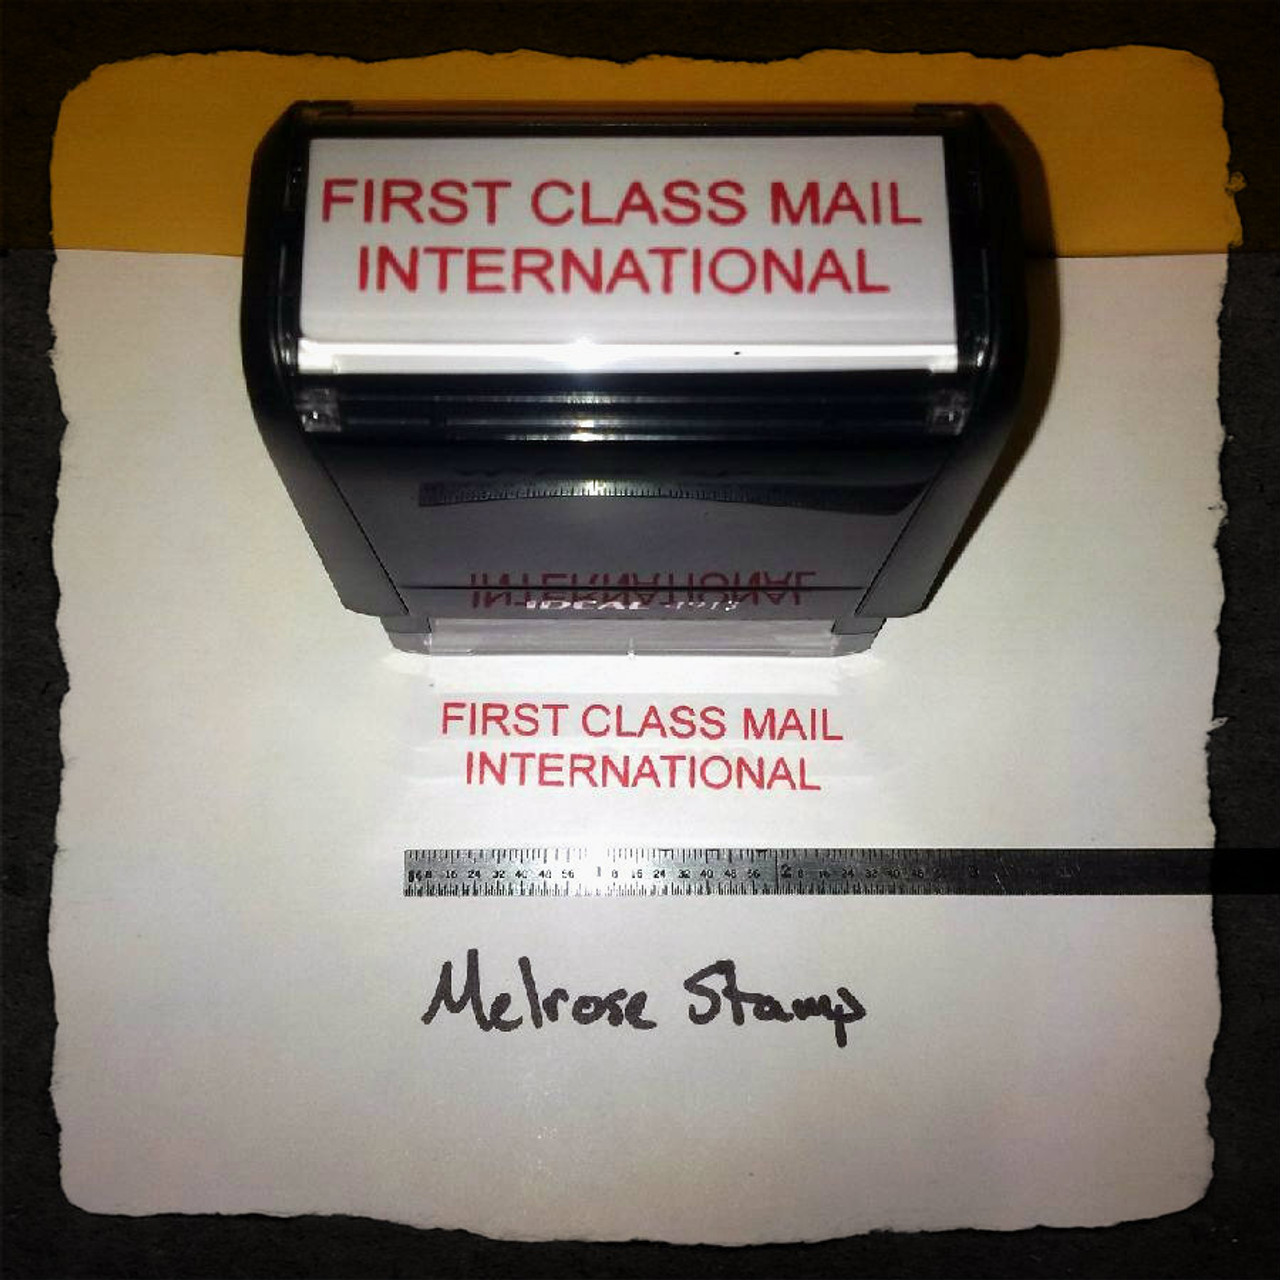 FIRST CLASS MAIL INTERNATIONAL Rubber Stamp for mail use self-inking